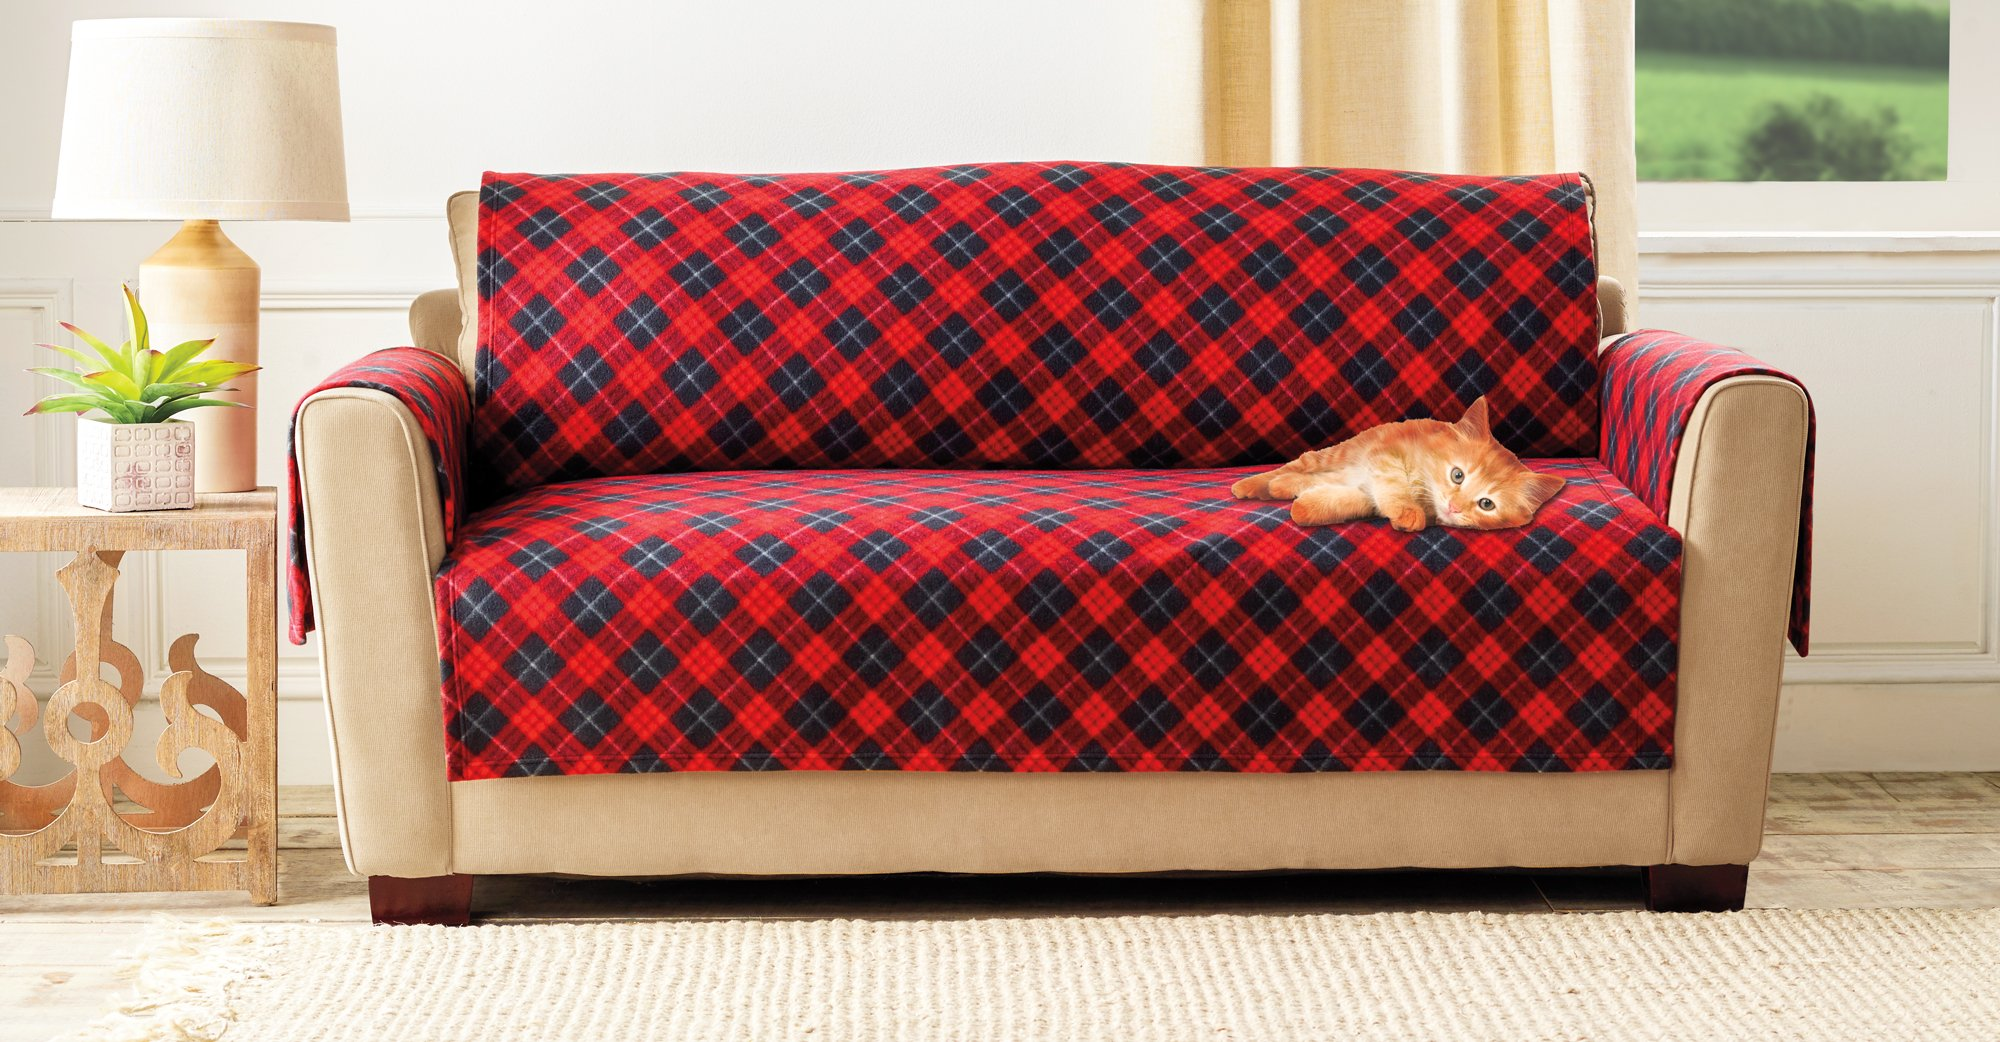 The Paragon Furniture Cover - Loveseat or Small Couch Furniture Protector, Soft Plaid Fleece Fabric, Small Sofa Cover Protects Fabric from Pet Stains and Every Day Wear